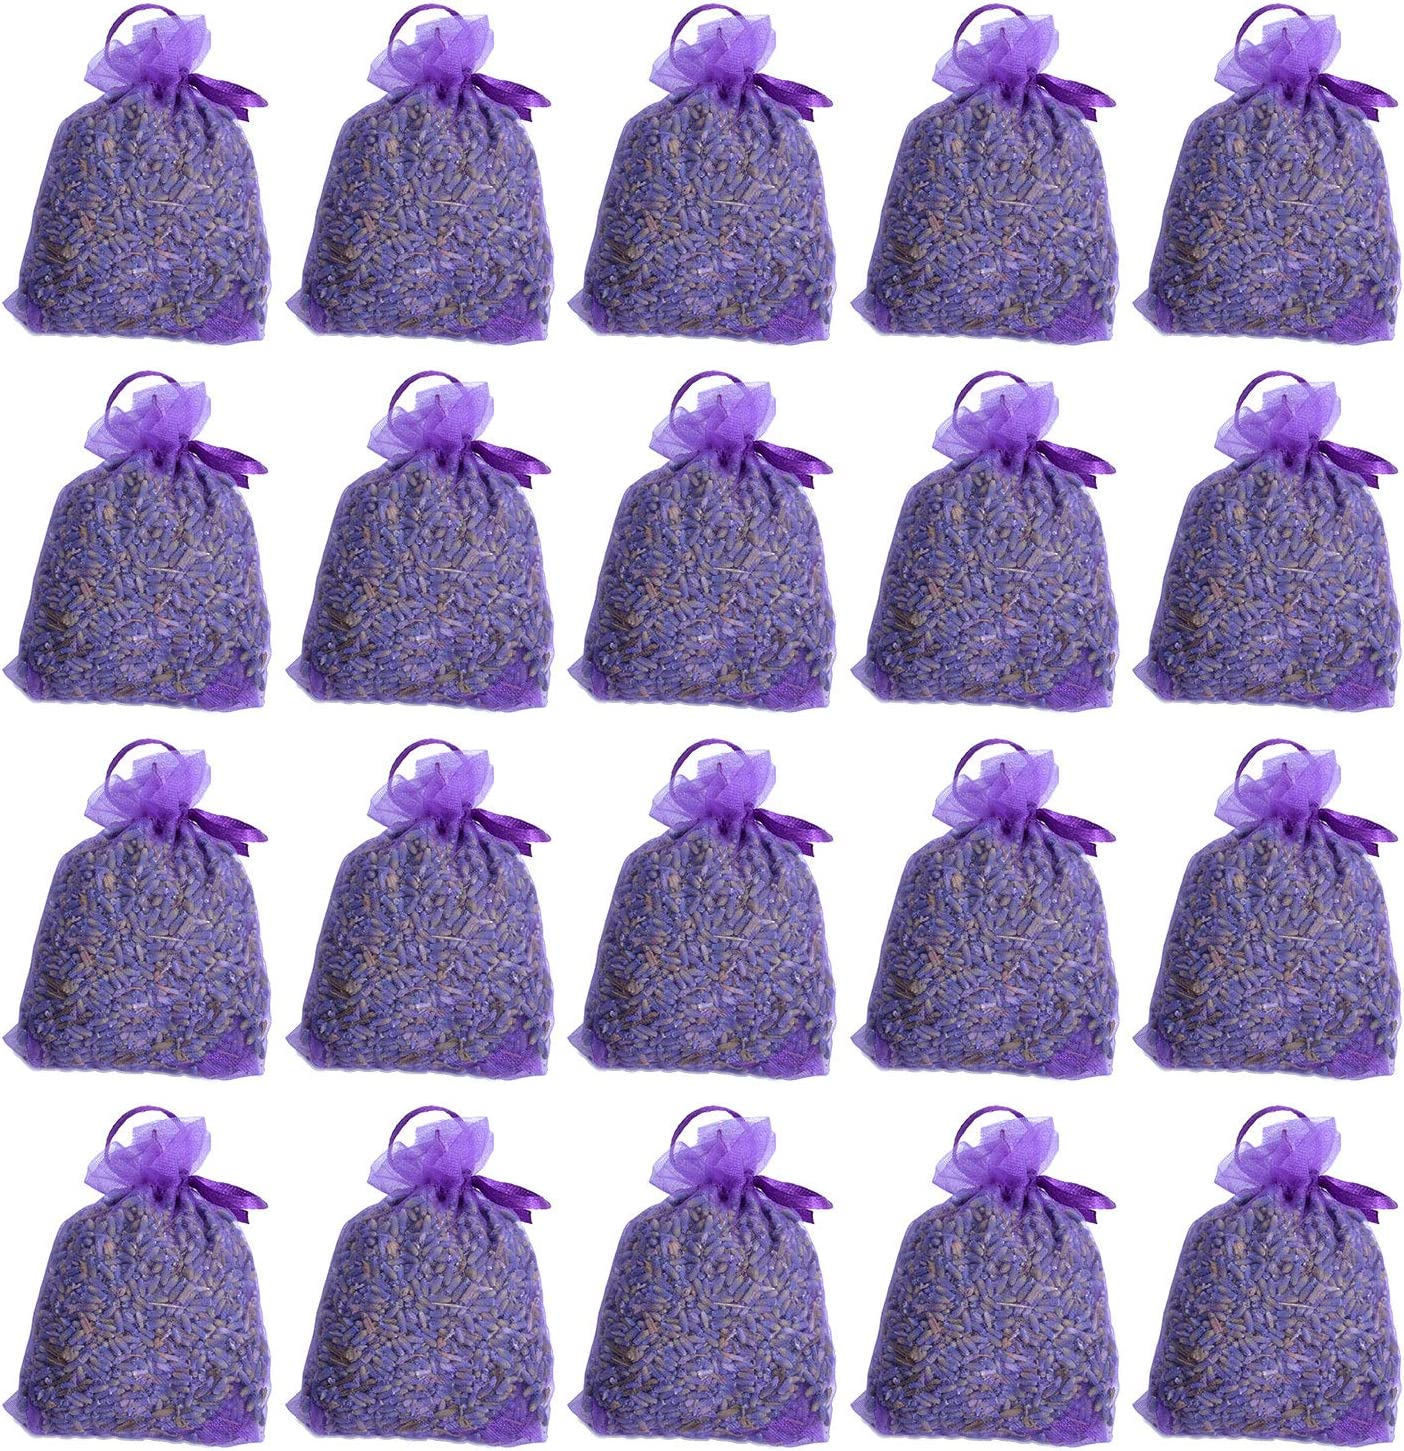 RENM 0.62lb Lavender Sachets for Closets, 20 Pack Lavender Bud Organic Dried Flower, Dried Lavender Buds Lavender Sachet for Drawers and Closets